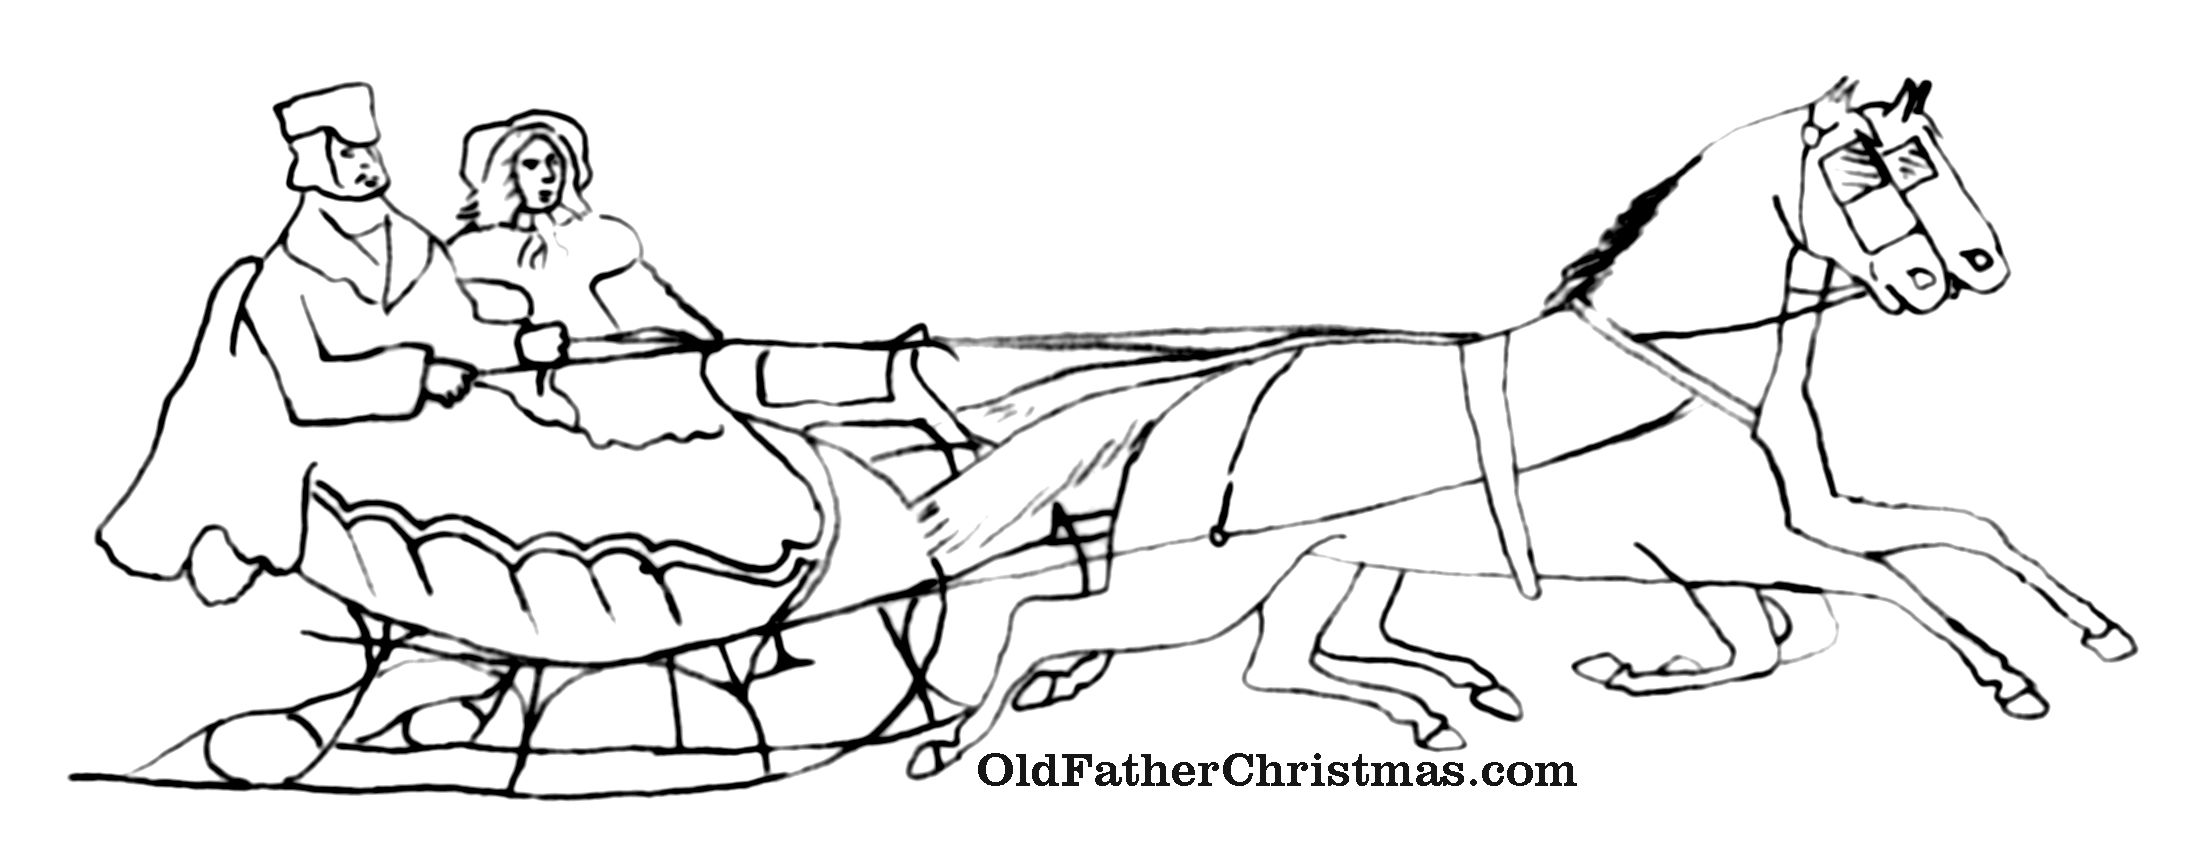 Christmas Coloring Pages Horse With How To Draw Sleigh Page 2 Http Co Uk S